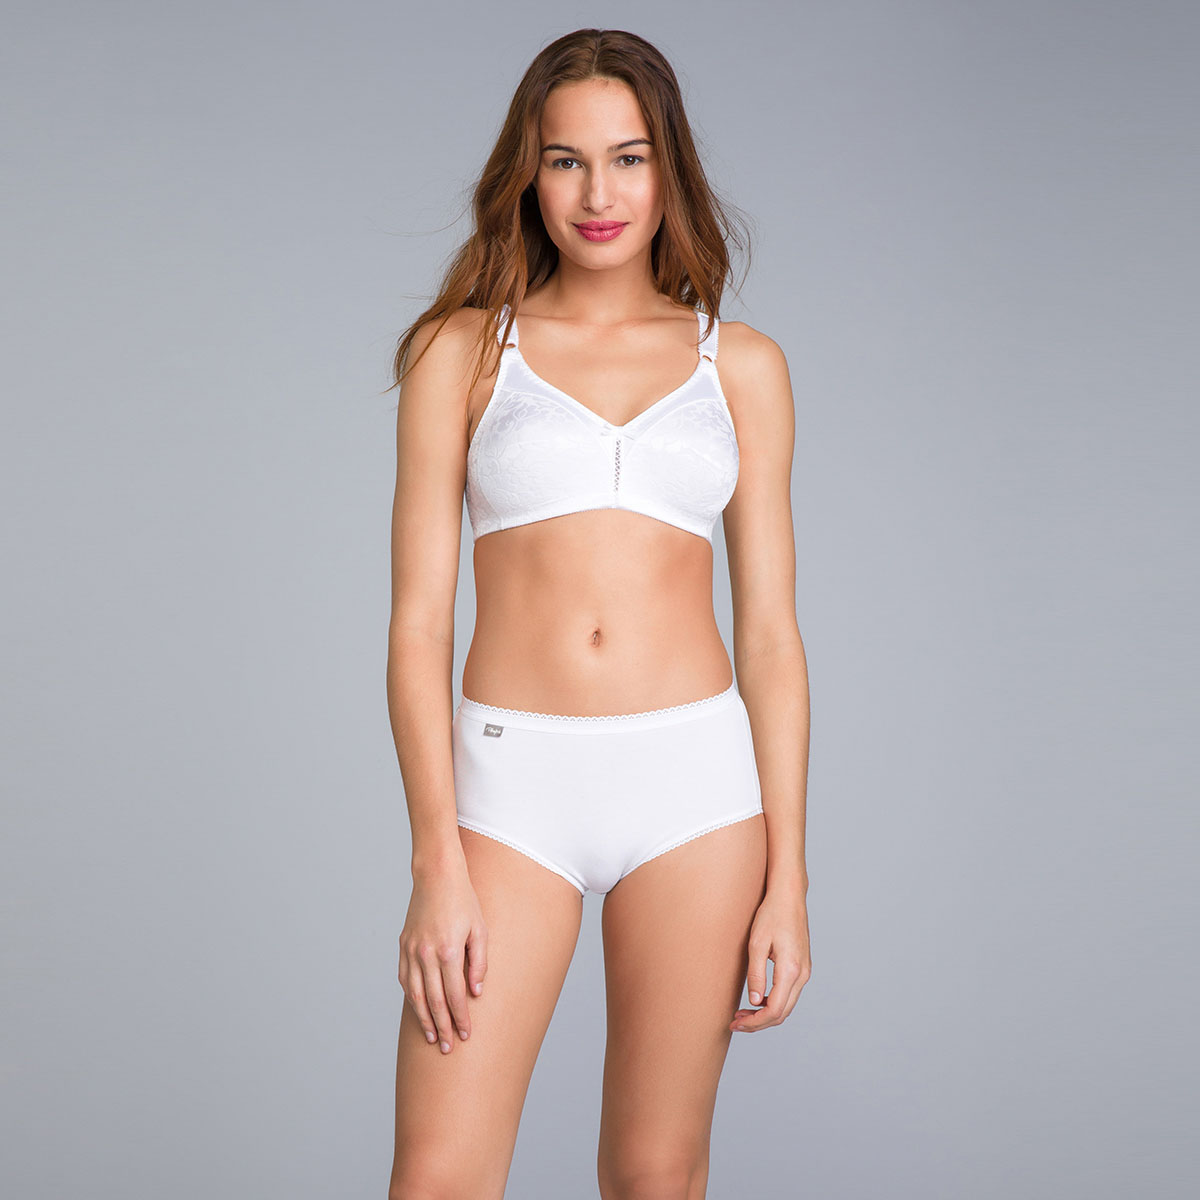 Non-Wired Full Cup Bra in White - Double Support-PLAYTEX